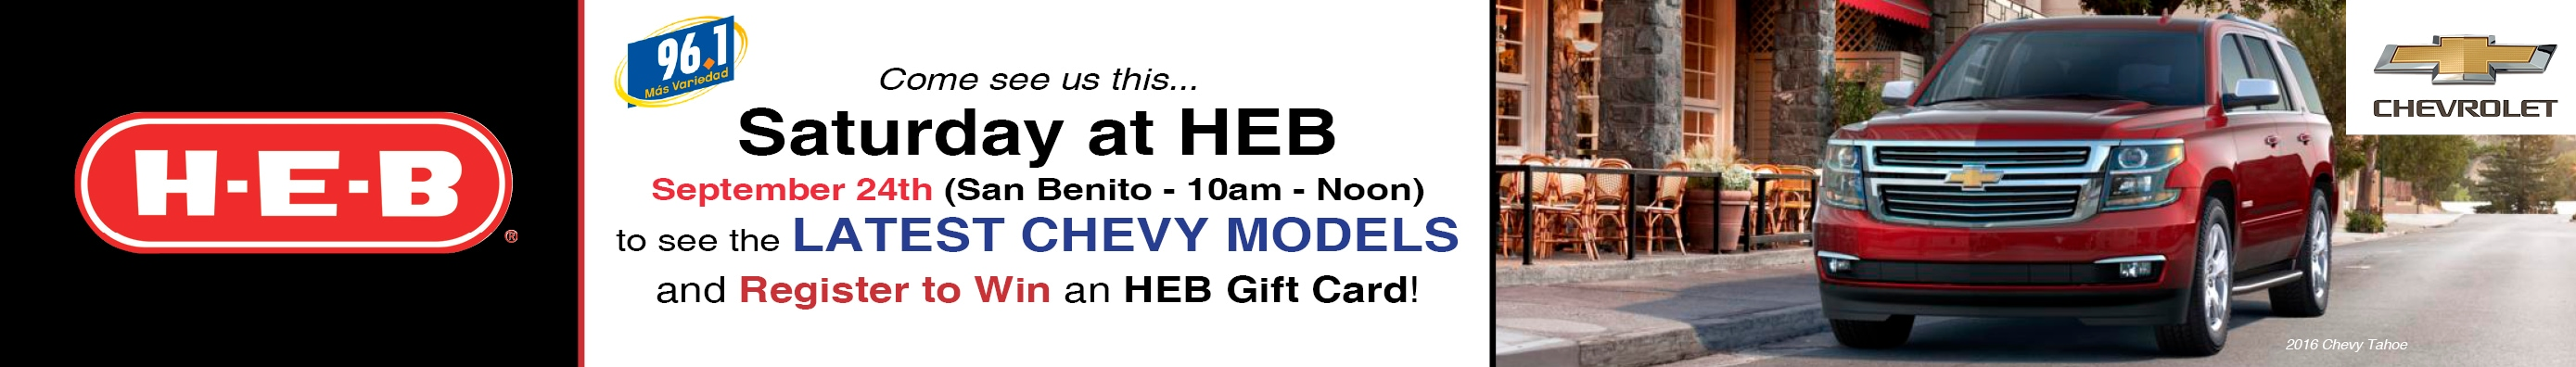 Good Gillman Chevrolet Harlingen Is Bringing The Latest Models To You! This  Saturday, September 24th, Some Of Our New Models Will Be At The H E B In San  Benito.